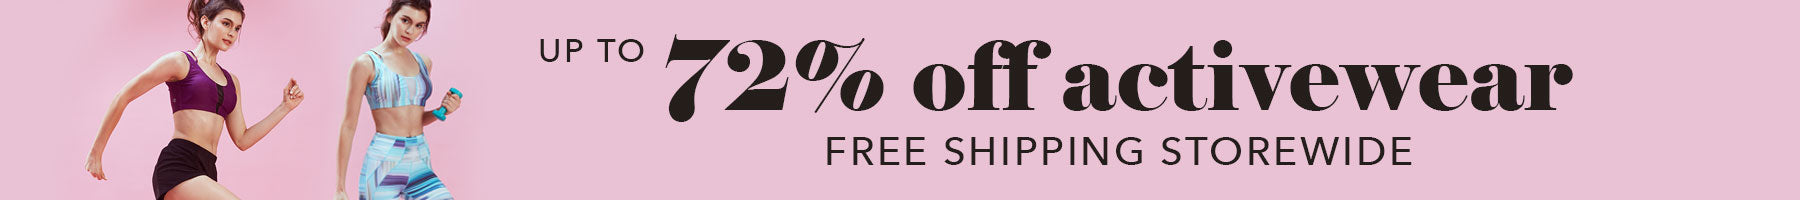 FUNFIT: <72% off all activewear + Free shipping